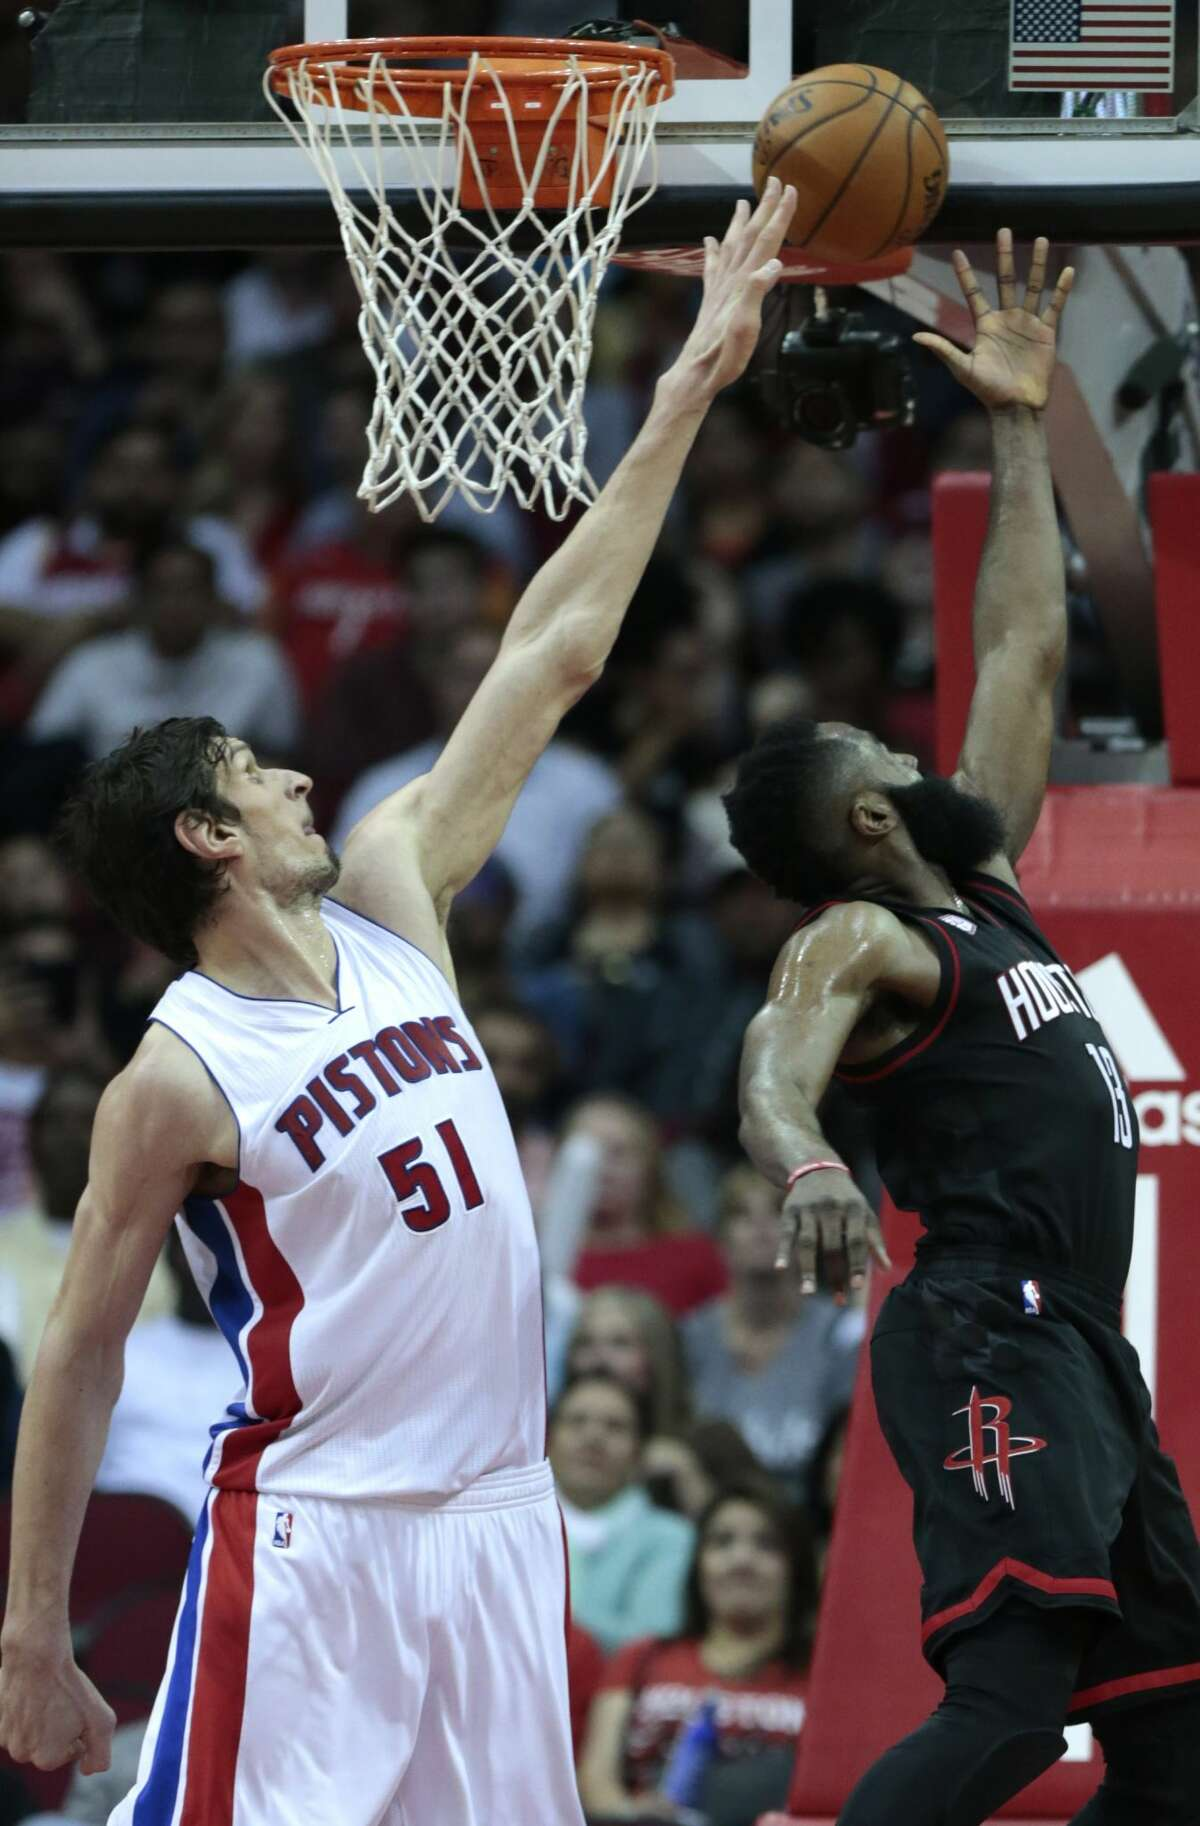 Detroit Pistons center Boban Marjanovic (51) defends a shot by Houston Rockets guard James Harden (13) during the third quarter of an NBA basketball game at Toyota Center on Friday, April 7, 2017, in Houston. ( Brett Coomer / Houston Chronicle )